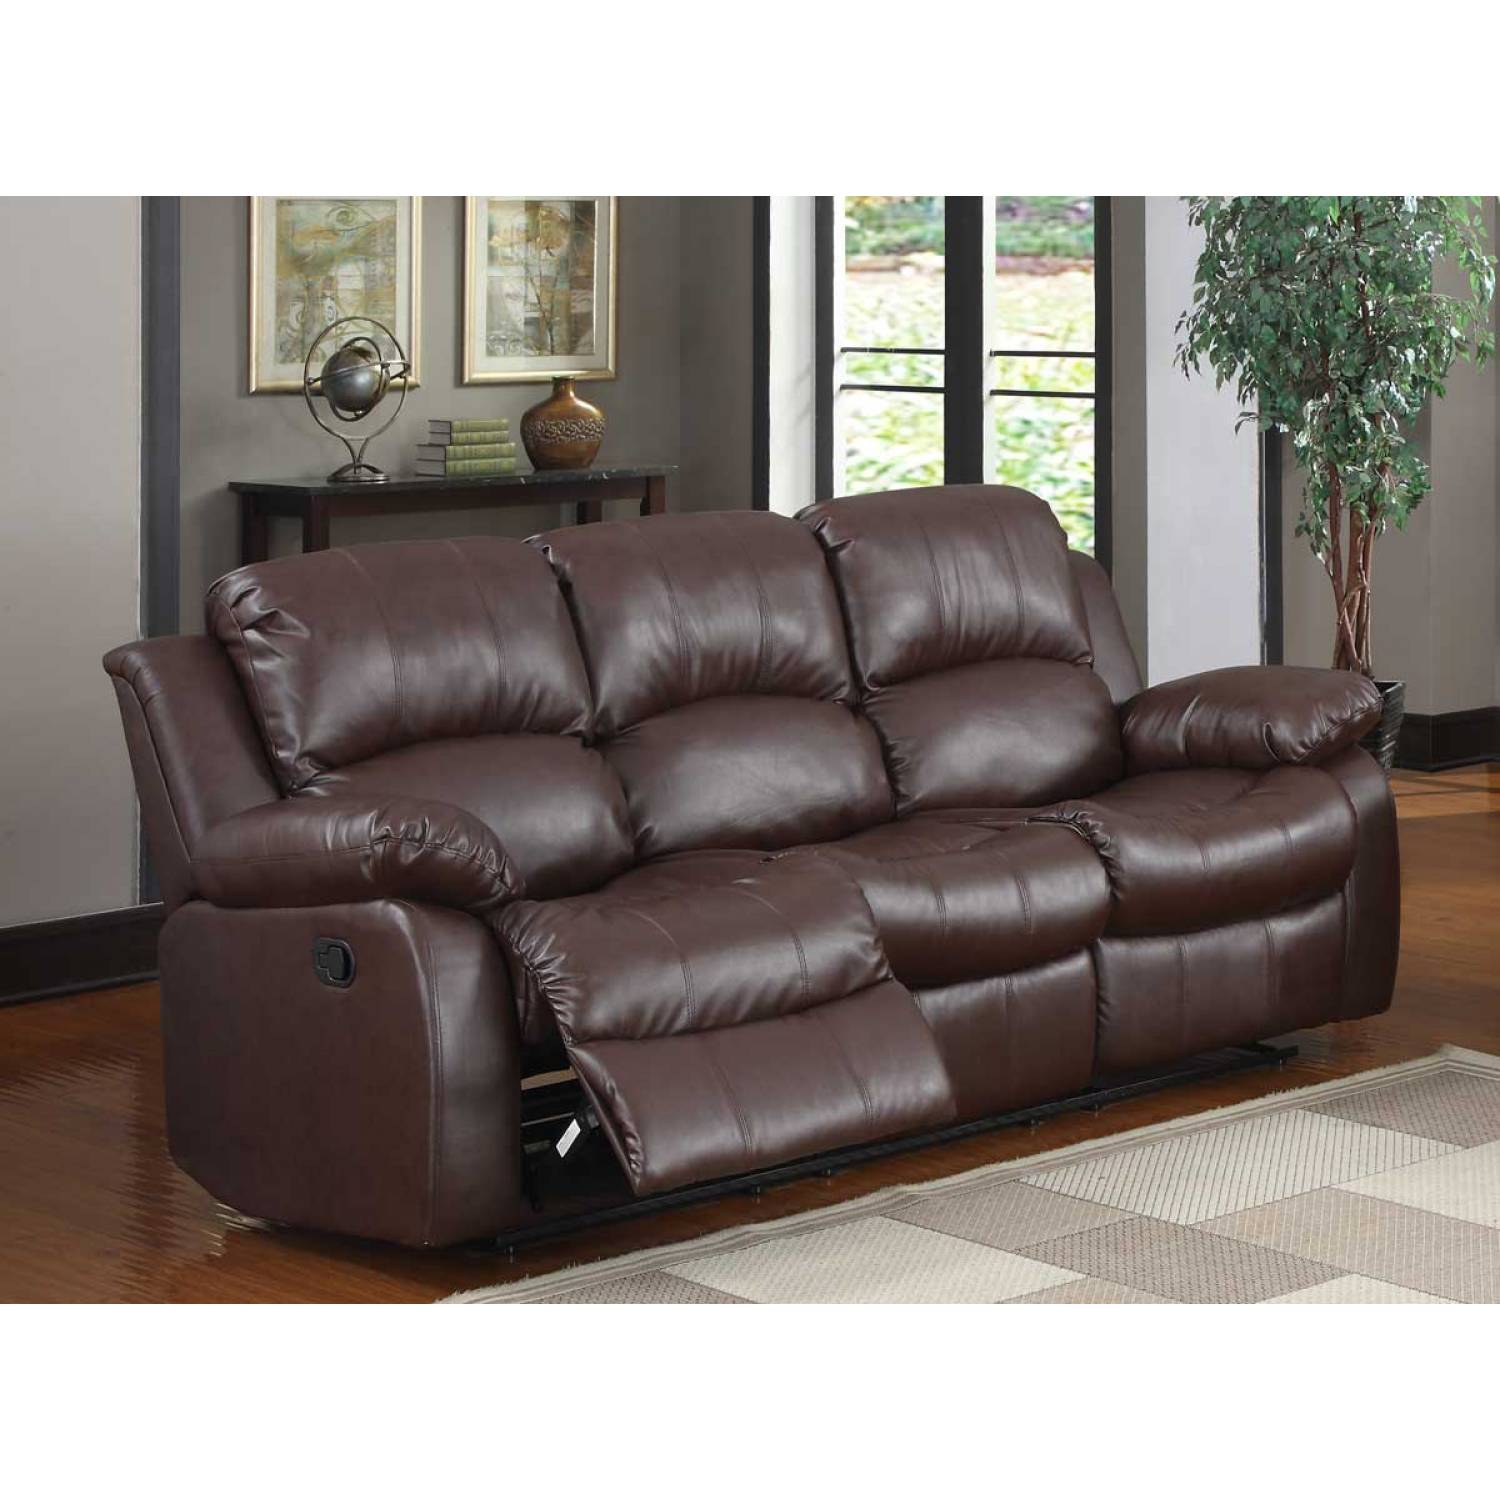 angus bonded leather reclining sofa all modern set 2pc cranley brown